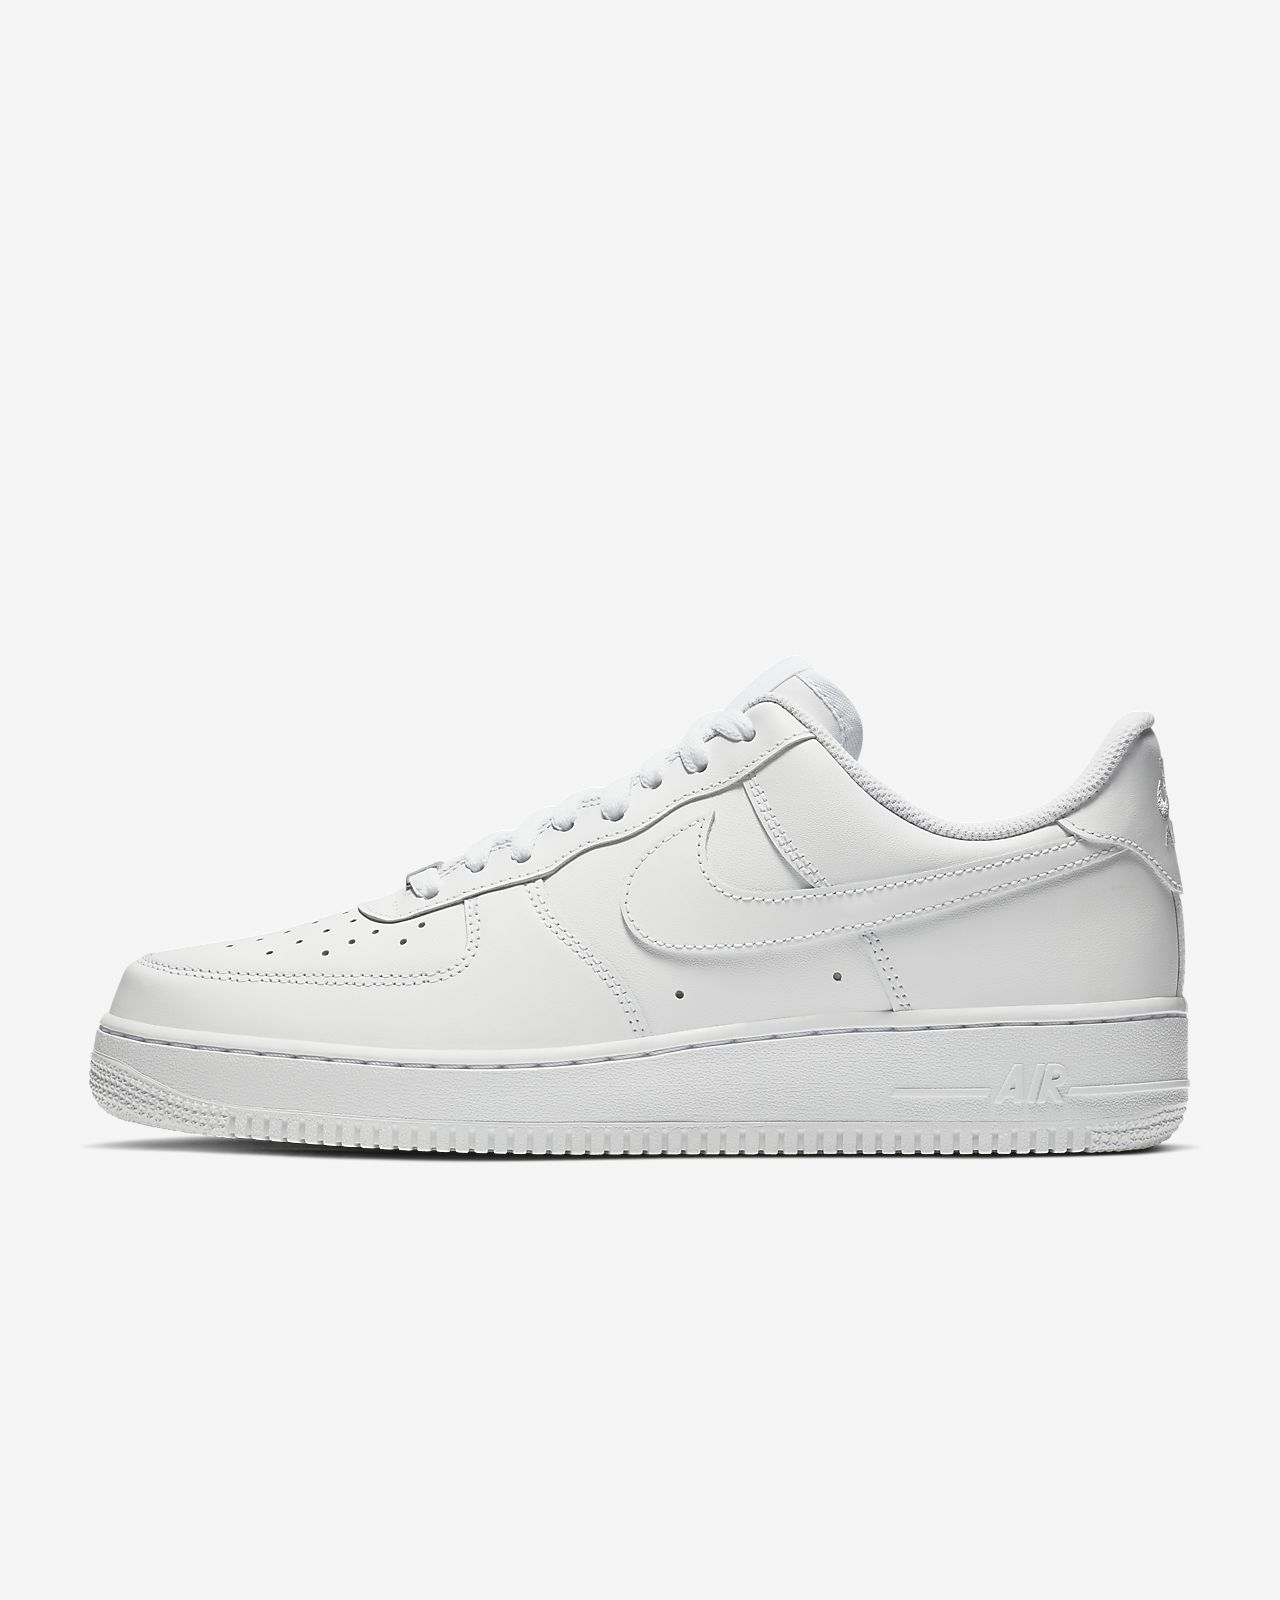 9f5c3be9679e6d Nike Air Force 1  07 Shoe. Nike.com